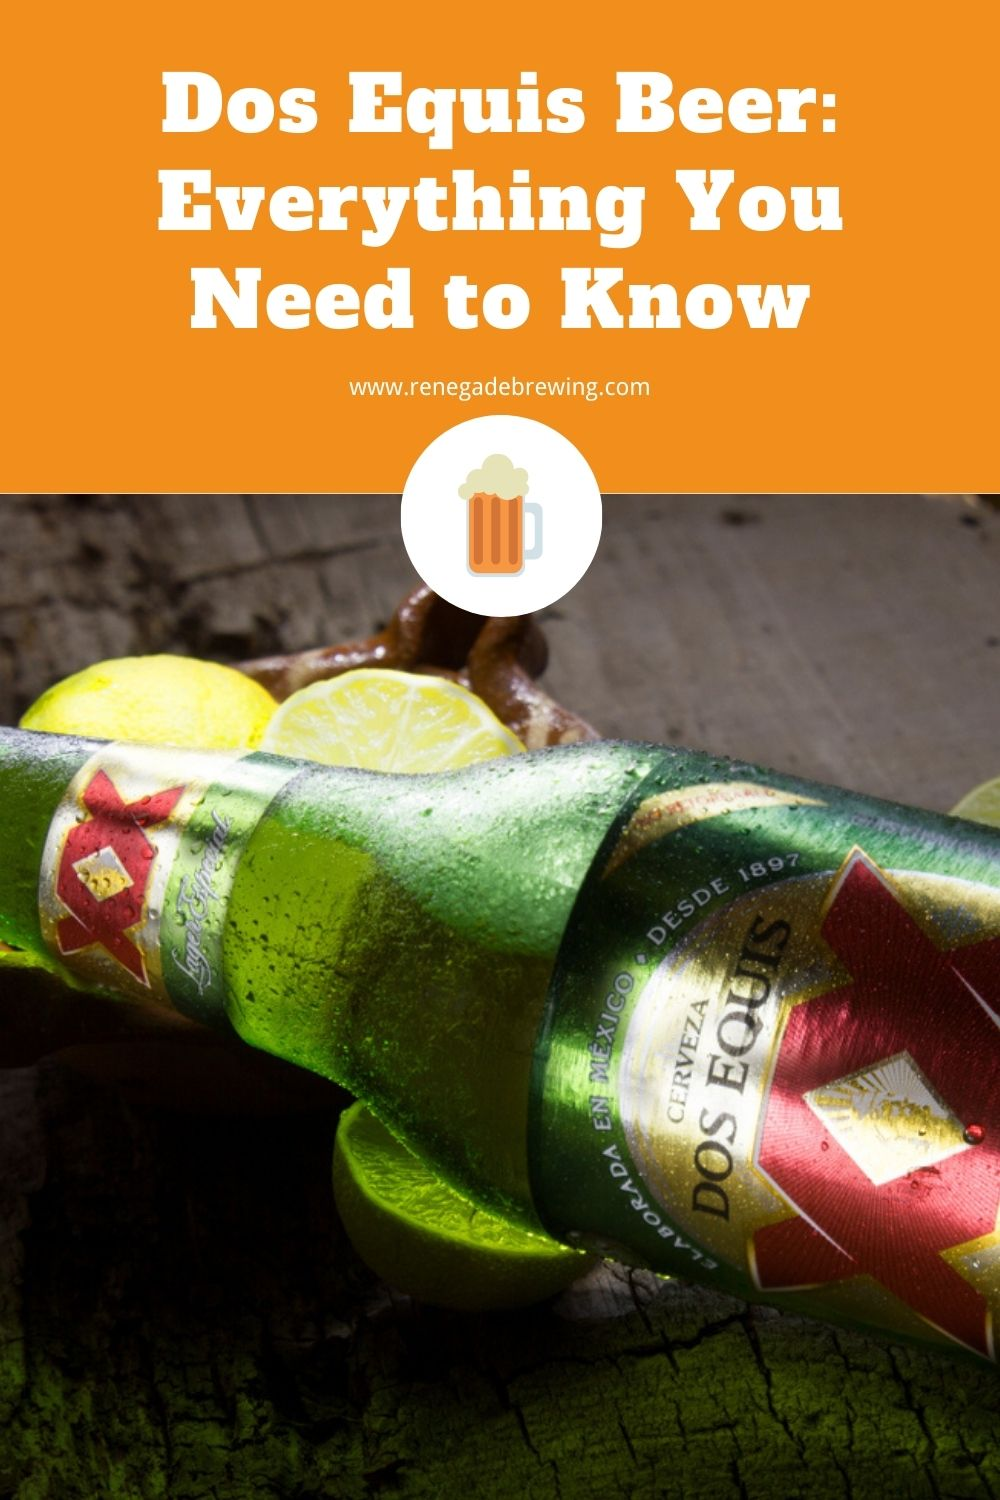 Dos Equis Beer Everything You Need to Know 2